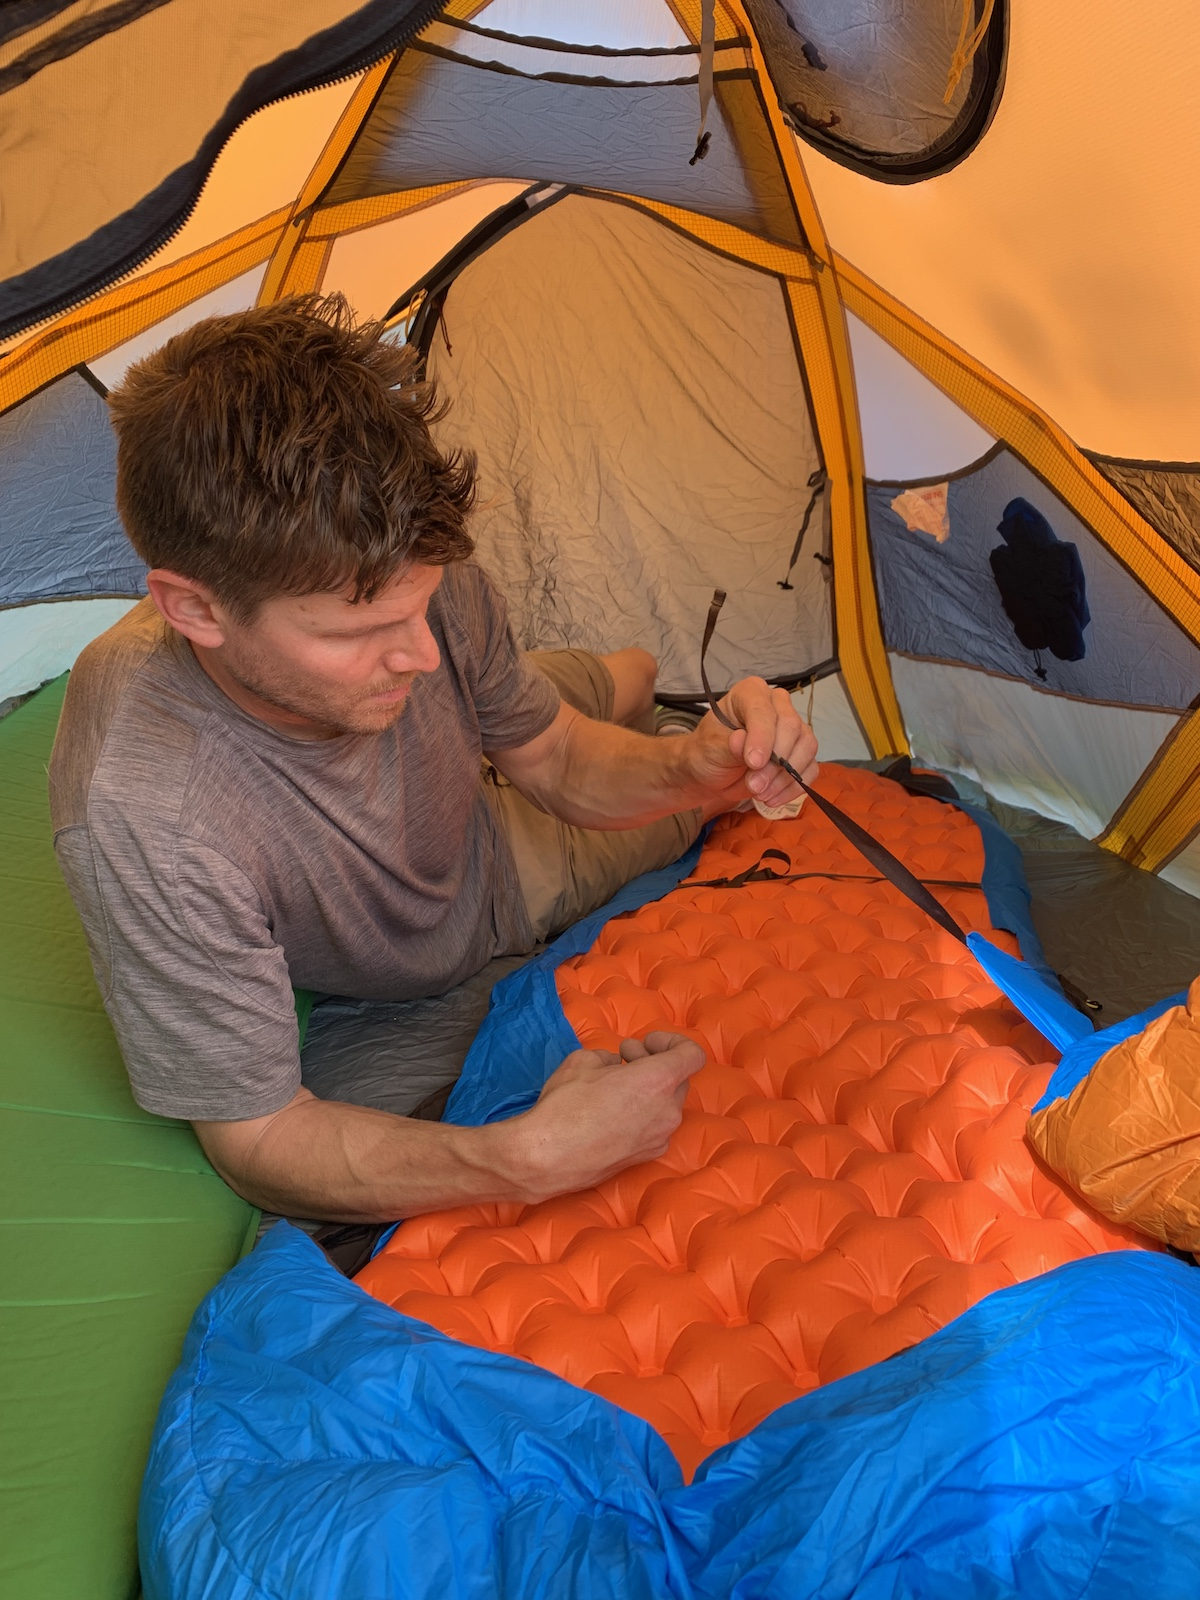 Franz attaches the Zenbivy sheet to his air mattress. [Photo] Mandi Franz